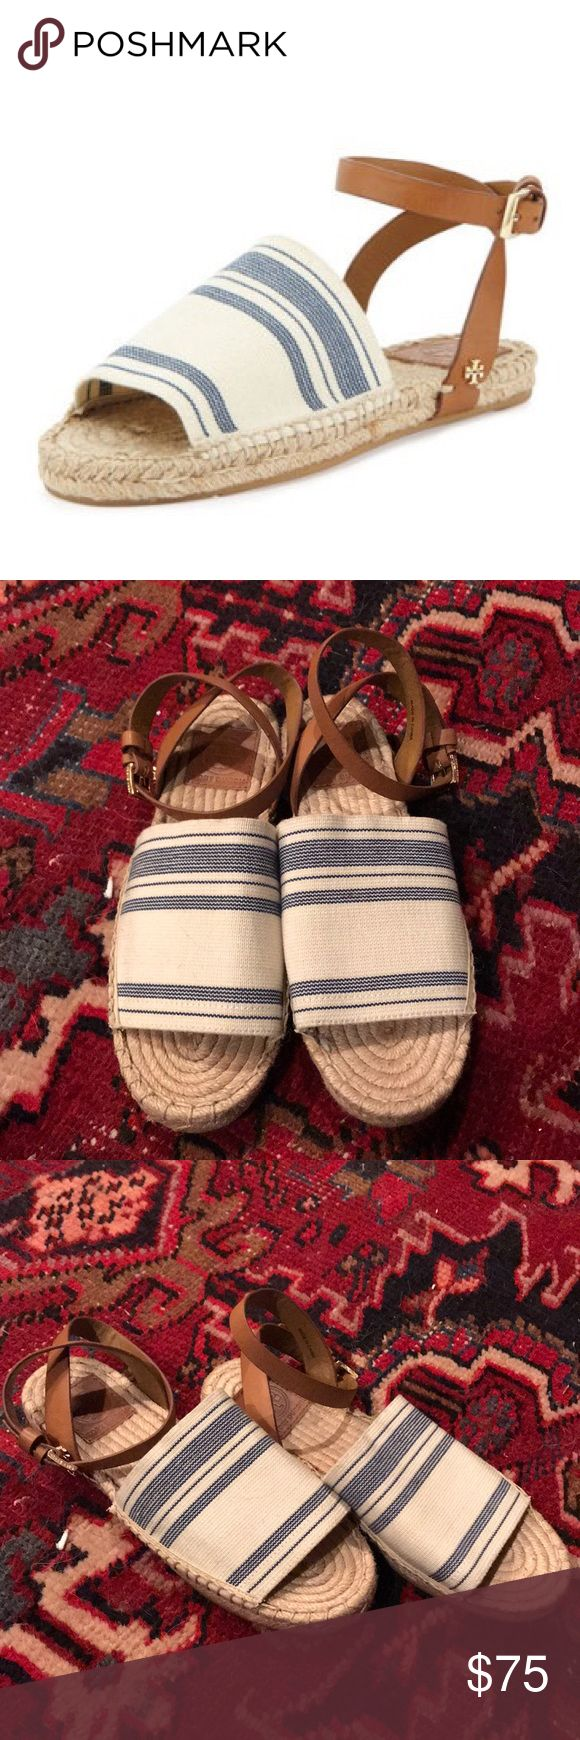 Tory Burch Espadrilles Tory Burch Stretch canvas blue and white espadrille sandals  I excellent condition. Size 6.5. Perfect for spring/summer. Tory Burch Shoes Sandals